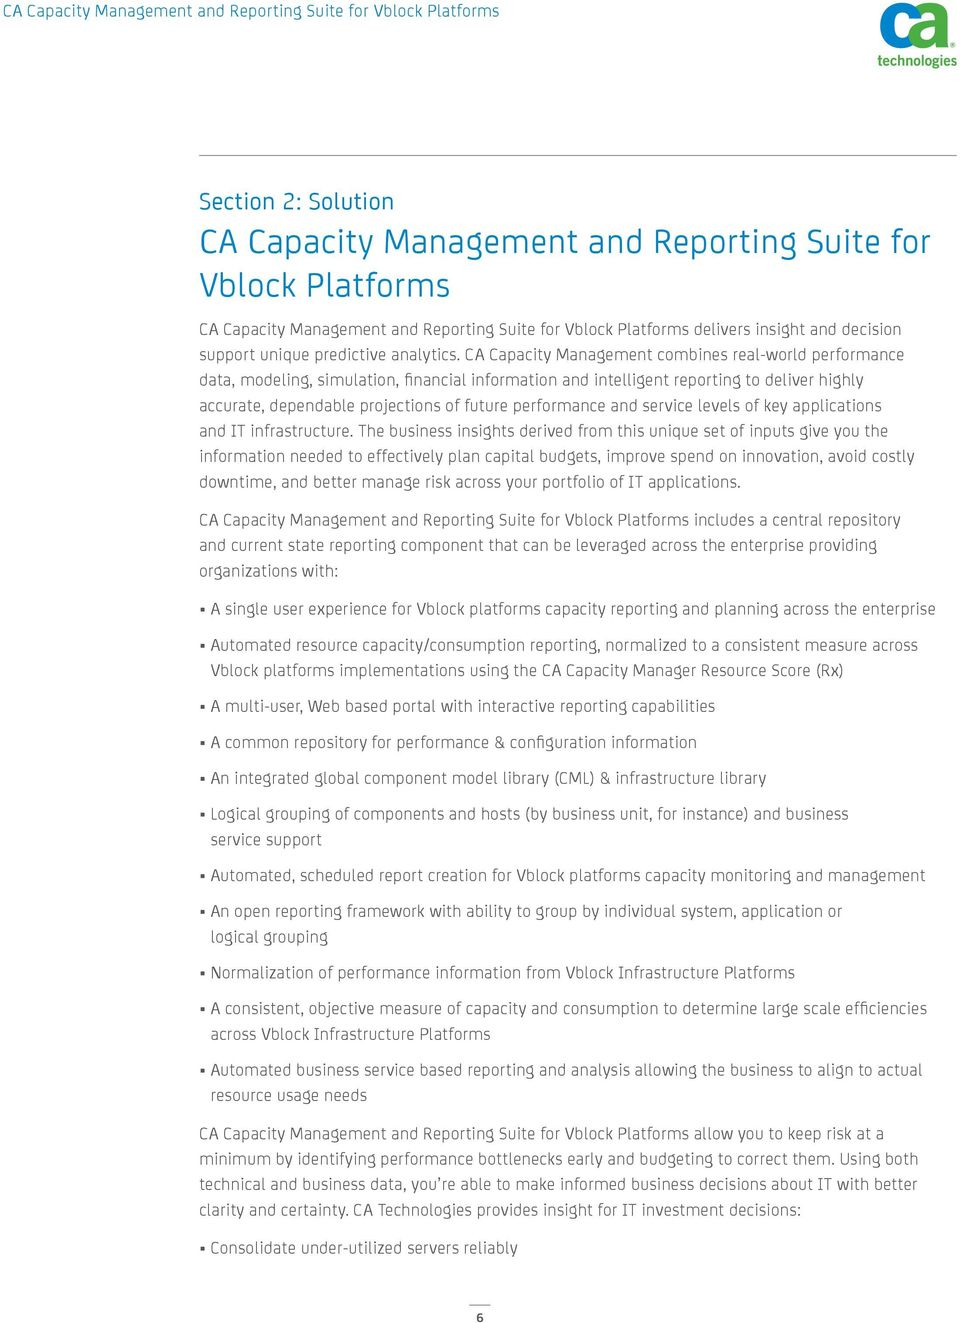 CA Capacity Management combines real-world performance data, modeling, simulation, financial information and intelligent reporting to deliver highly accurate, dependable projections of future